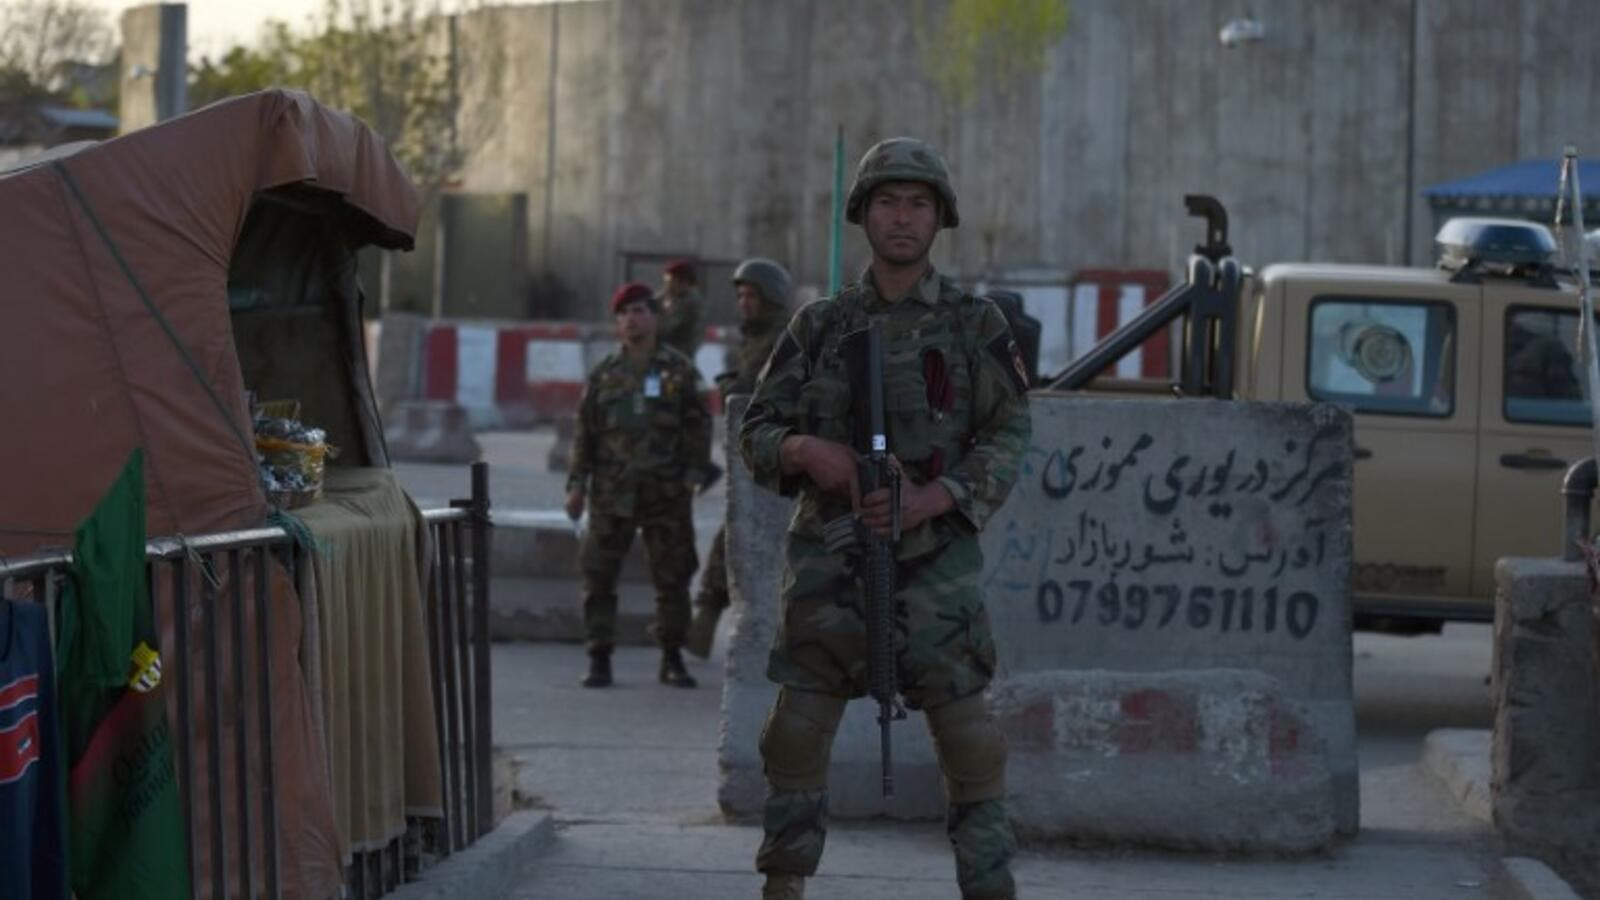 Afghan security personnel stand guard at the site of a suicide attack near the Ministry of Defense in Kabul on April 12, 2017. (AFP/Wakil Kohsar)